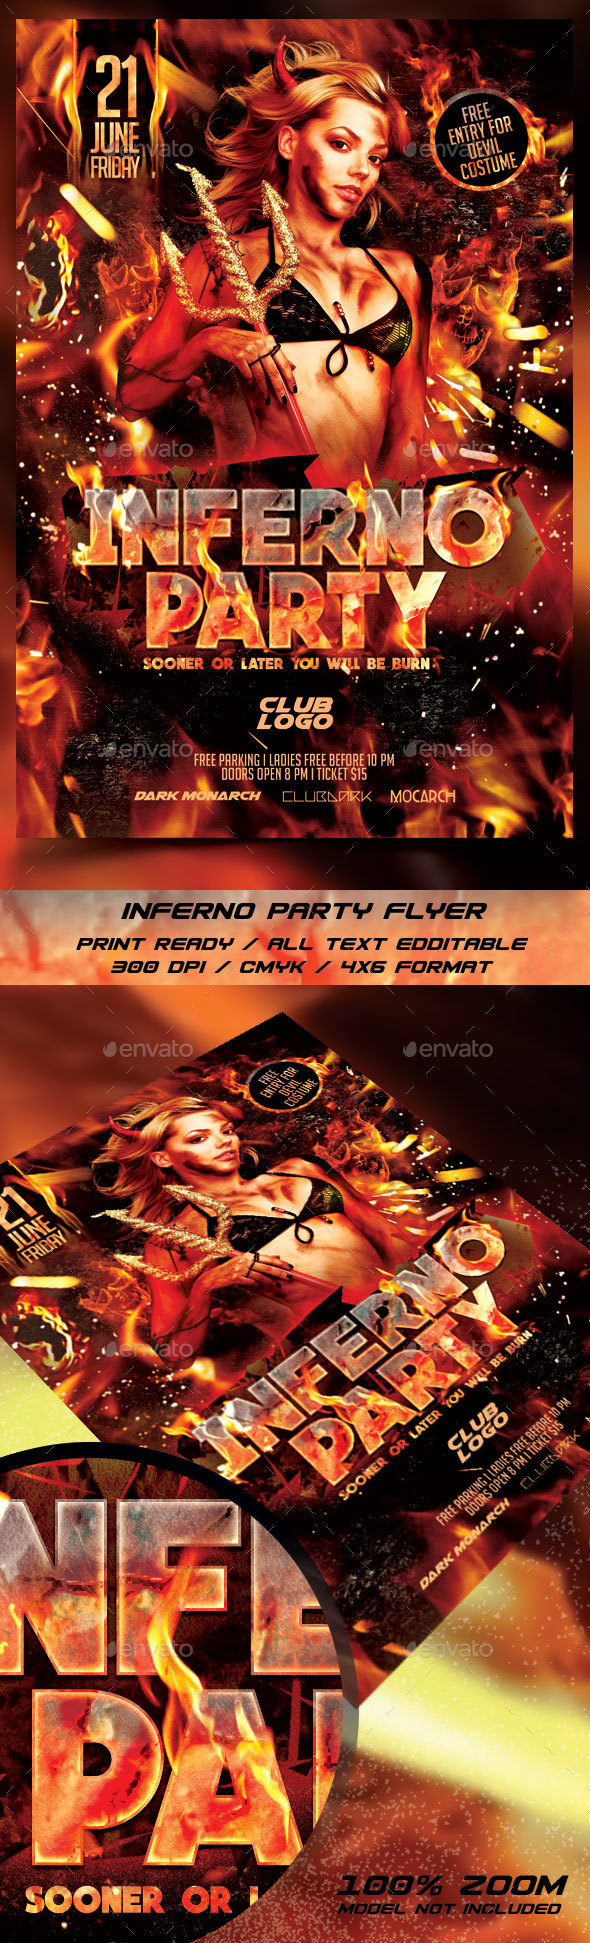 Inferno Party Flyer Templates - Events Flyers